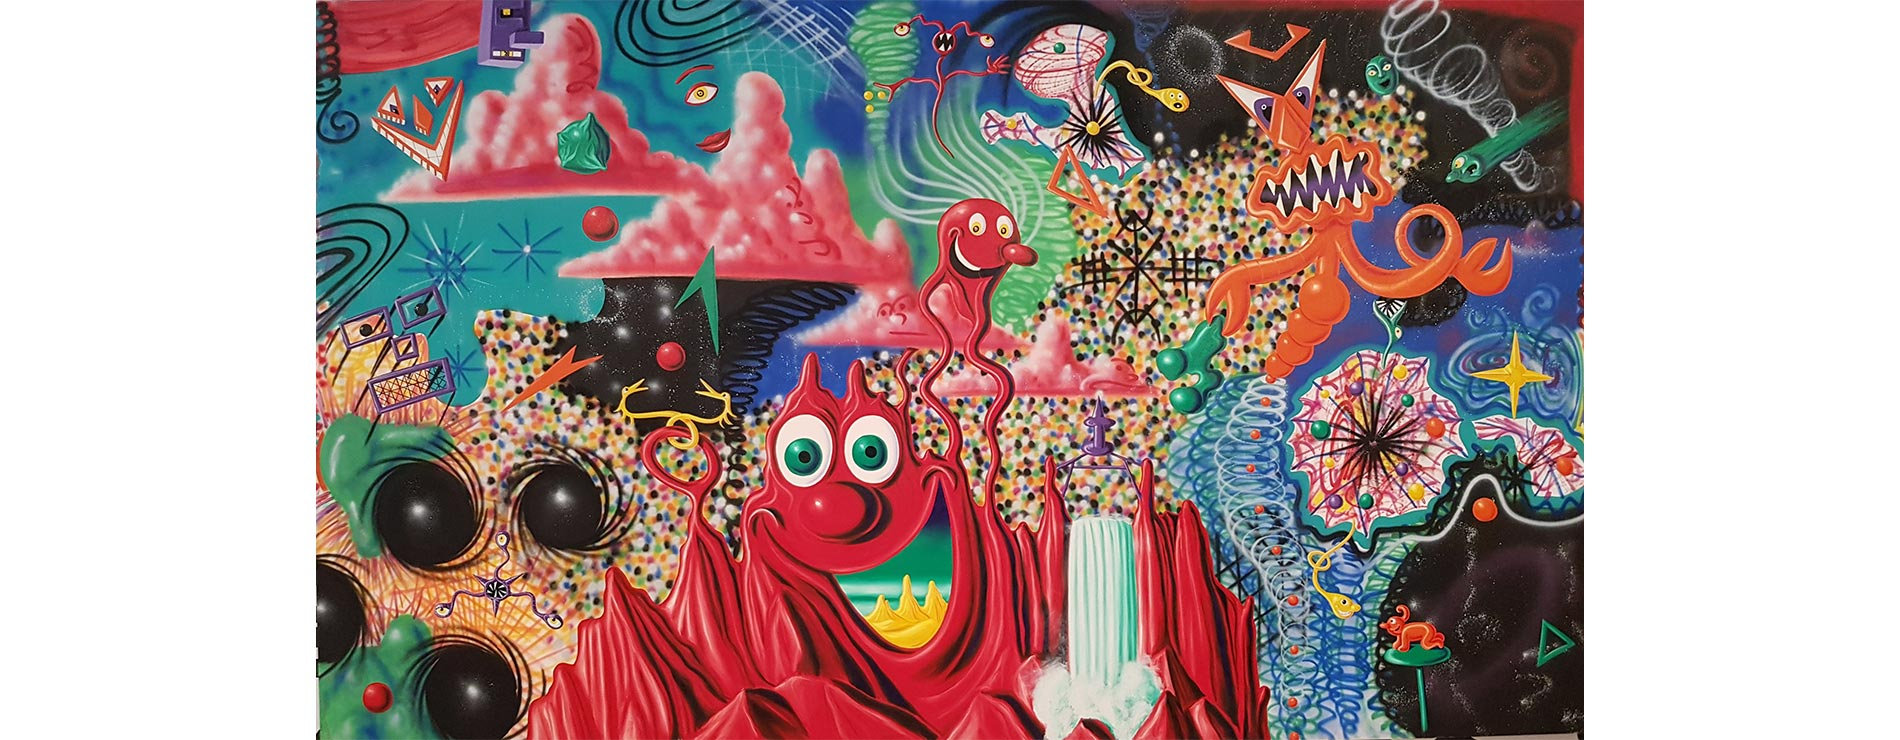 'WHEN WORLDS COLLIDE', 1984, oil and spray paint on canvas, 122 x 209 inches, by Kenny Scharf. (©Kenny Scharf.Licensed by Artestar, New York.)